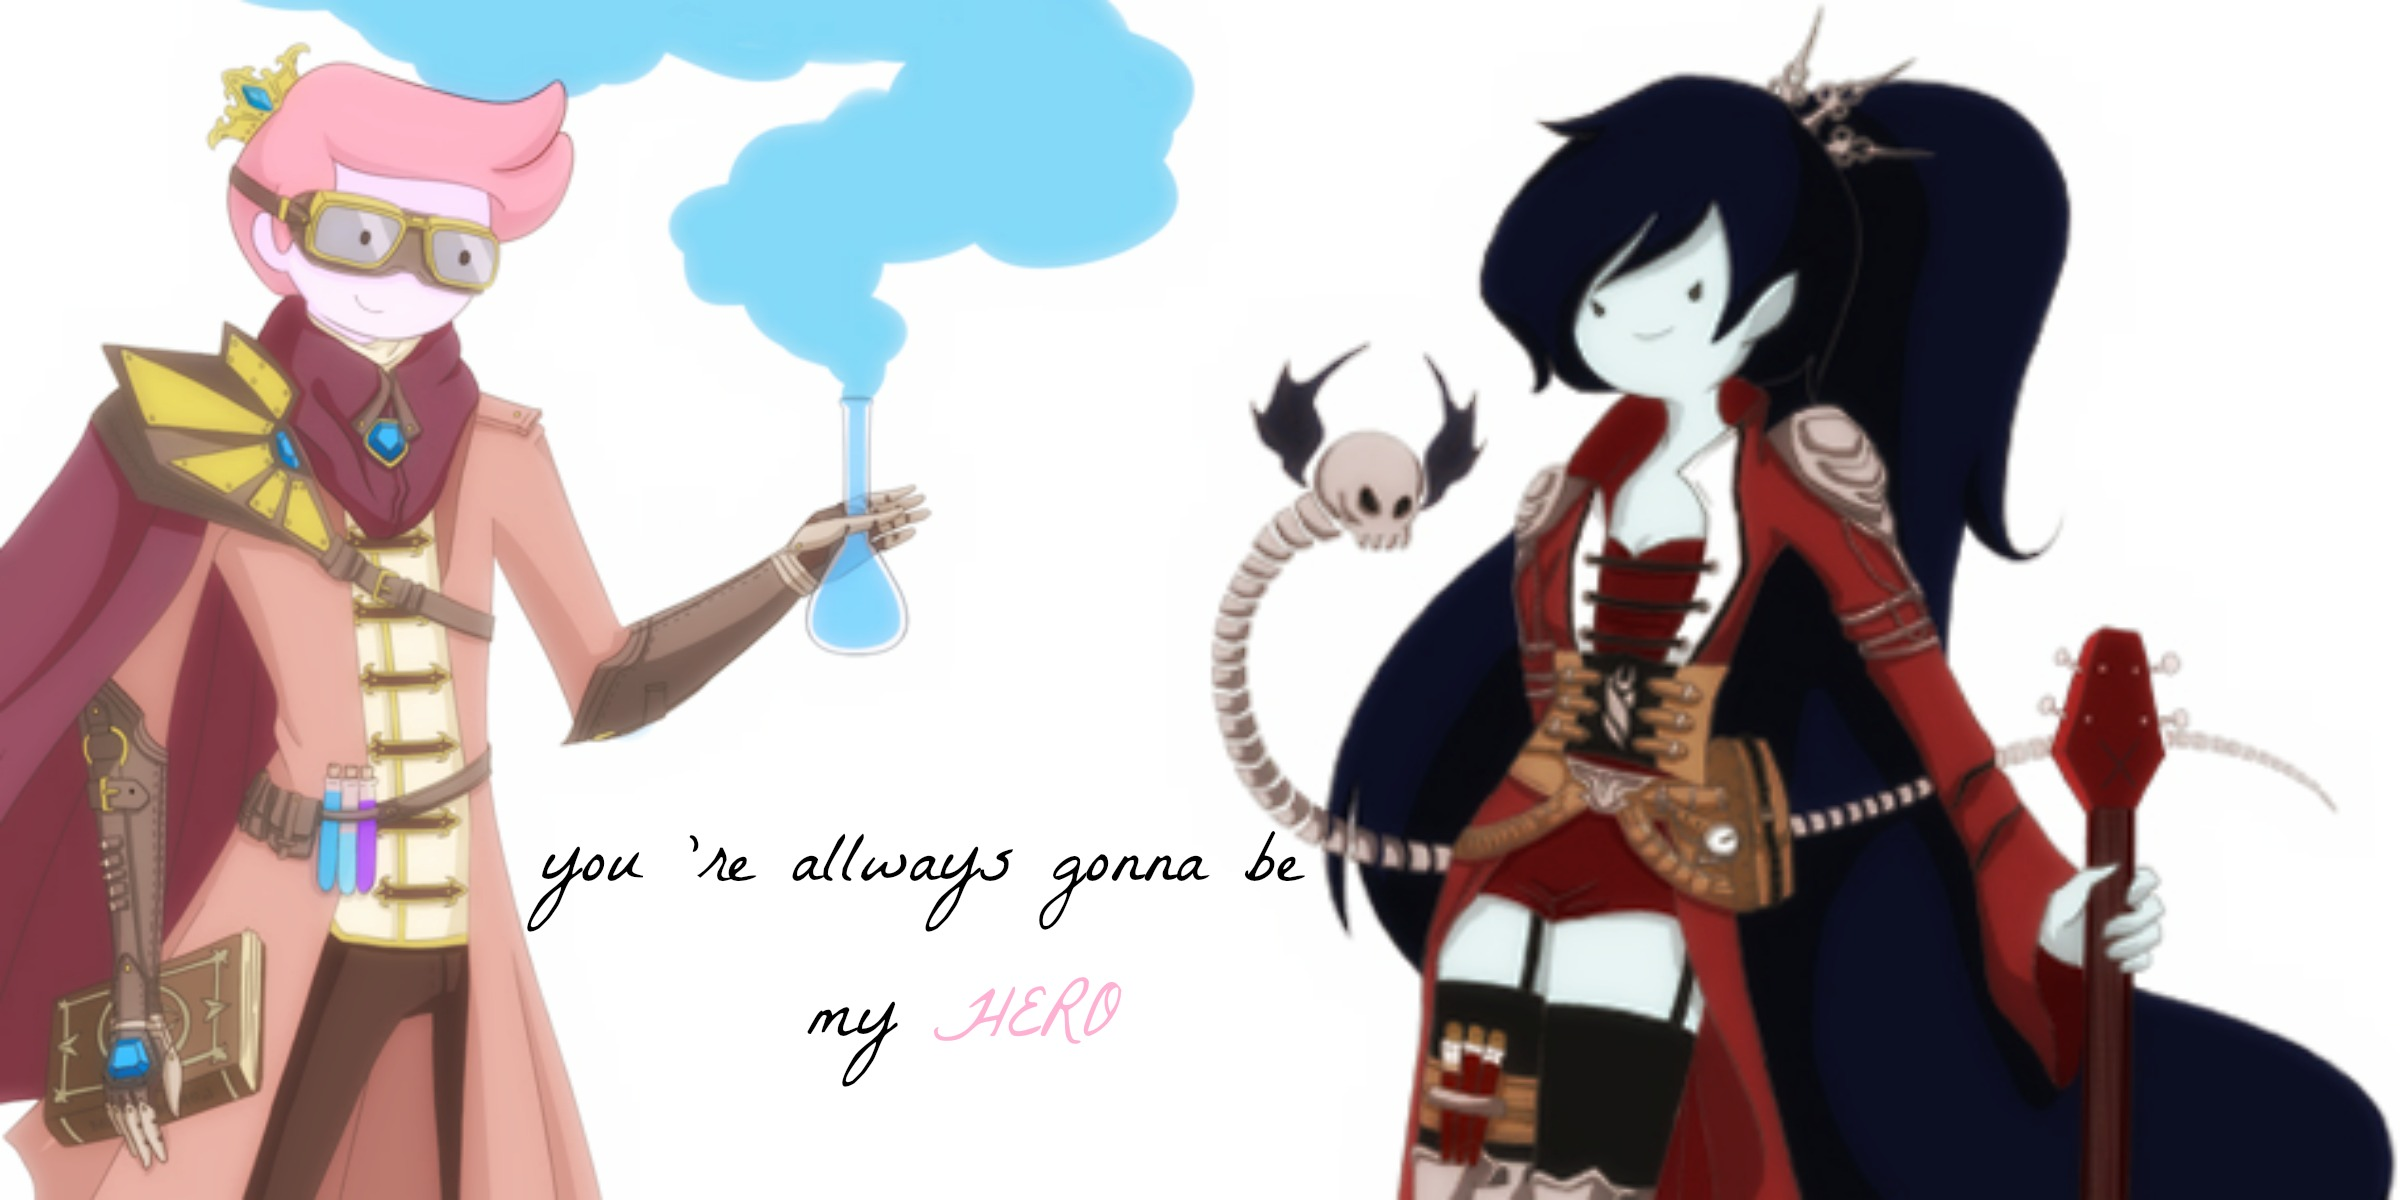 Prince gumball and marceline fanfiction